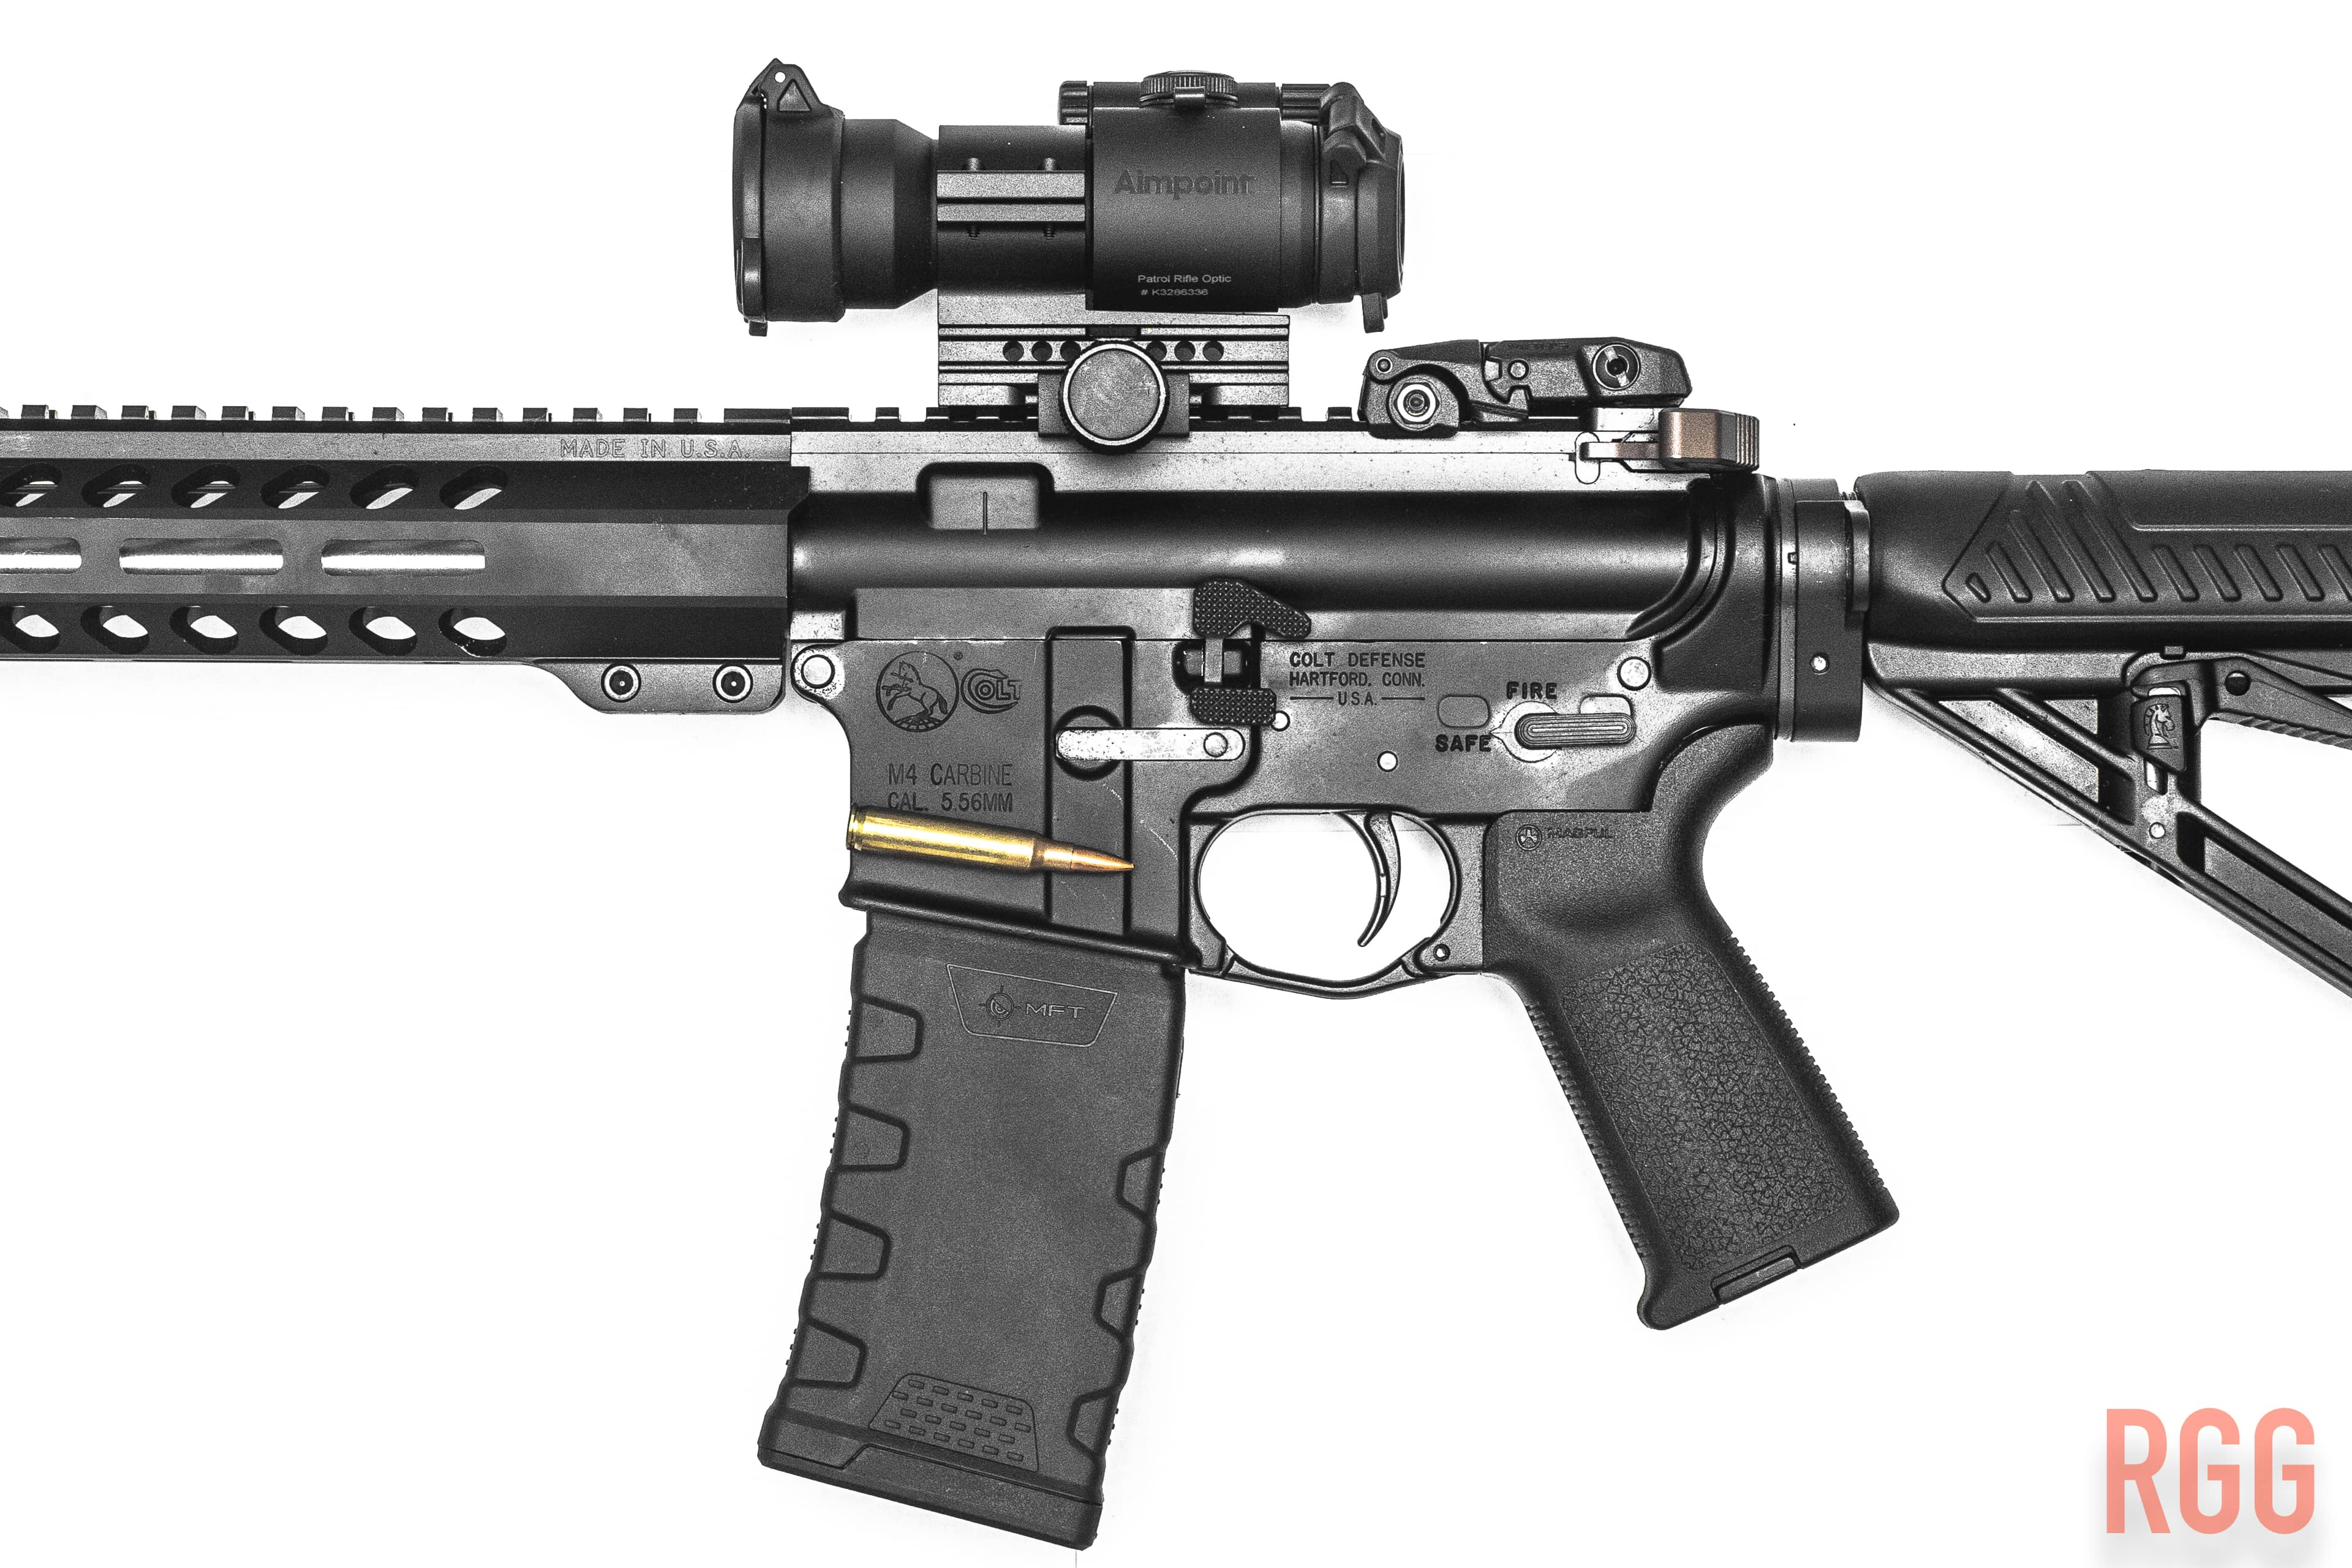 Colt LE6920 AR-15 with some modifications along the way. DL Hughley doesn't think we should have these.